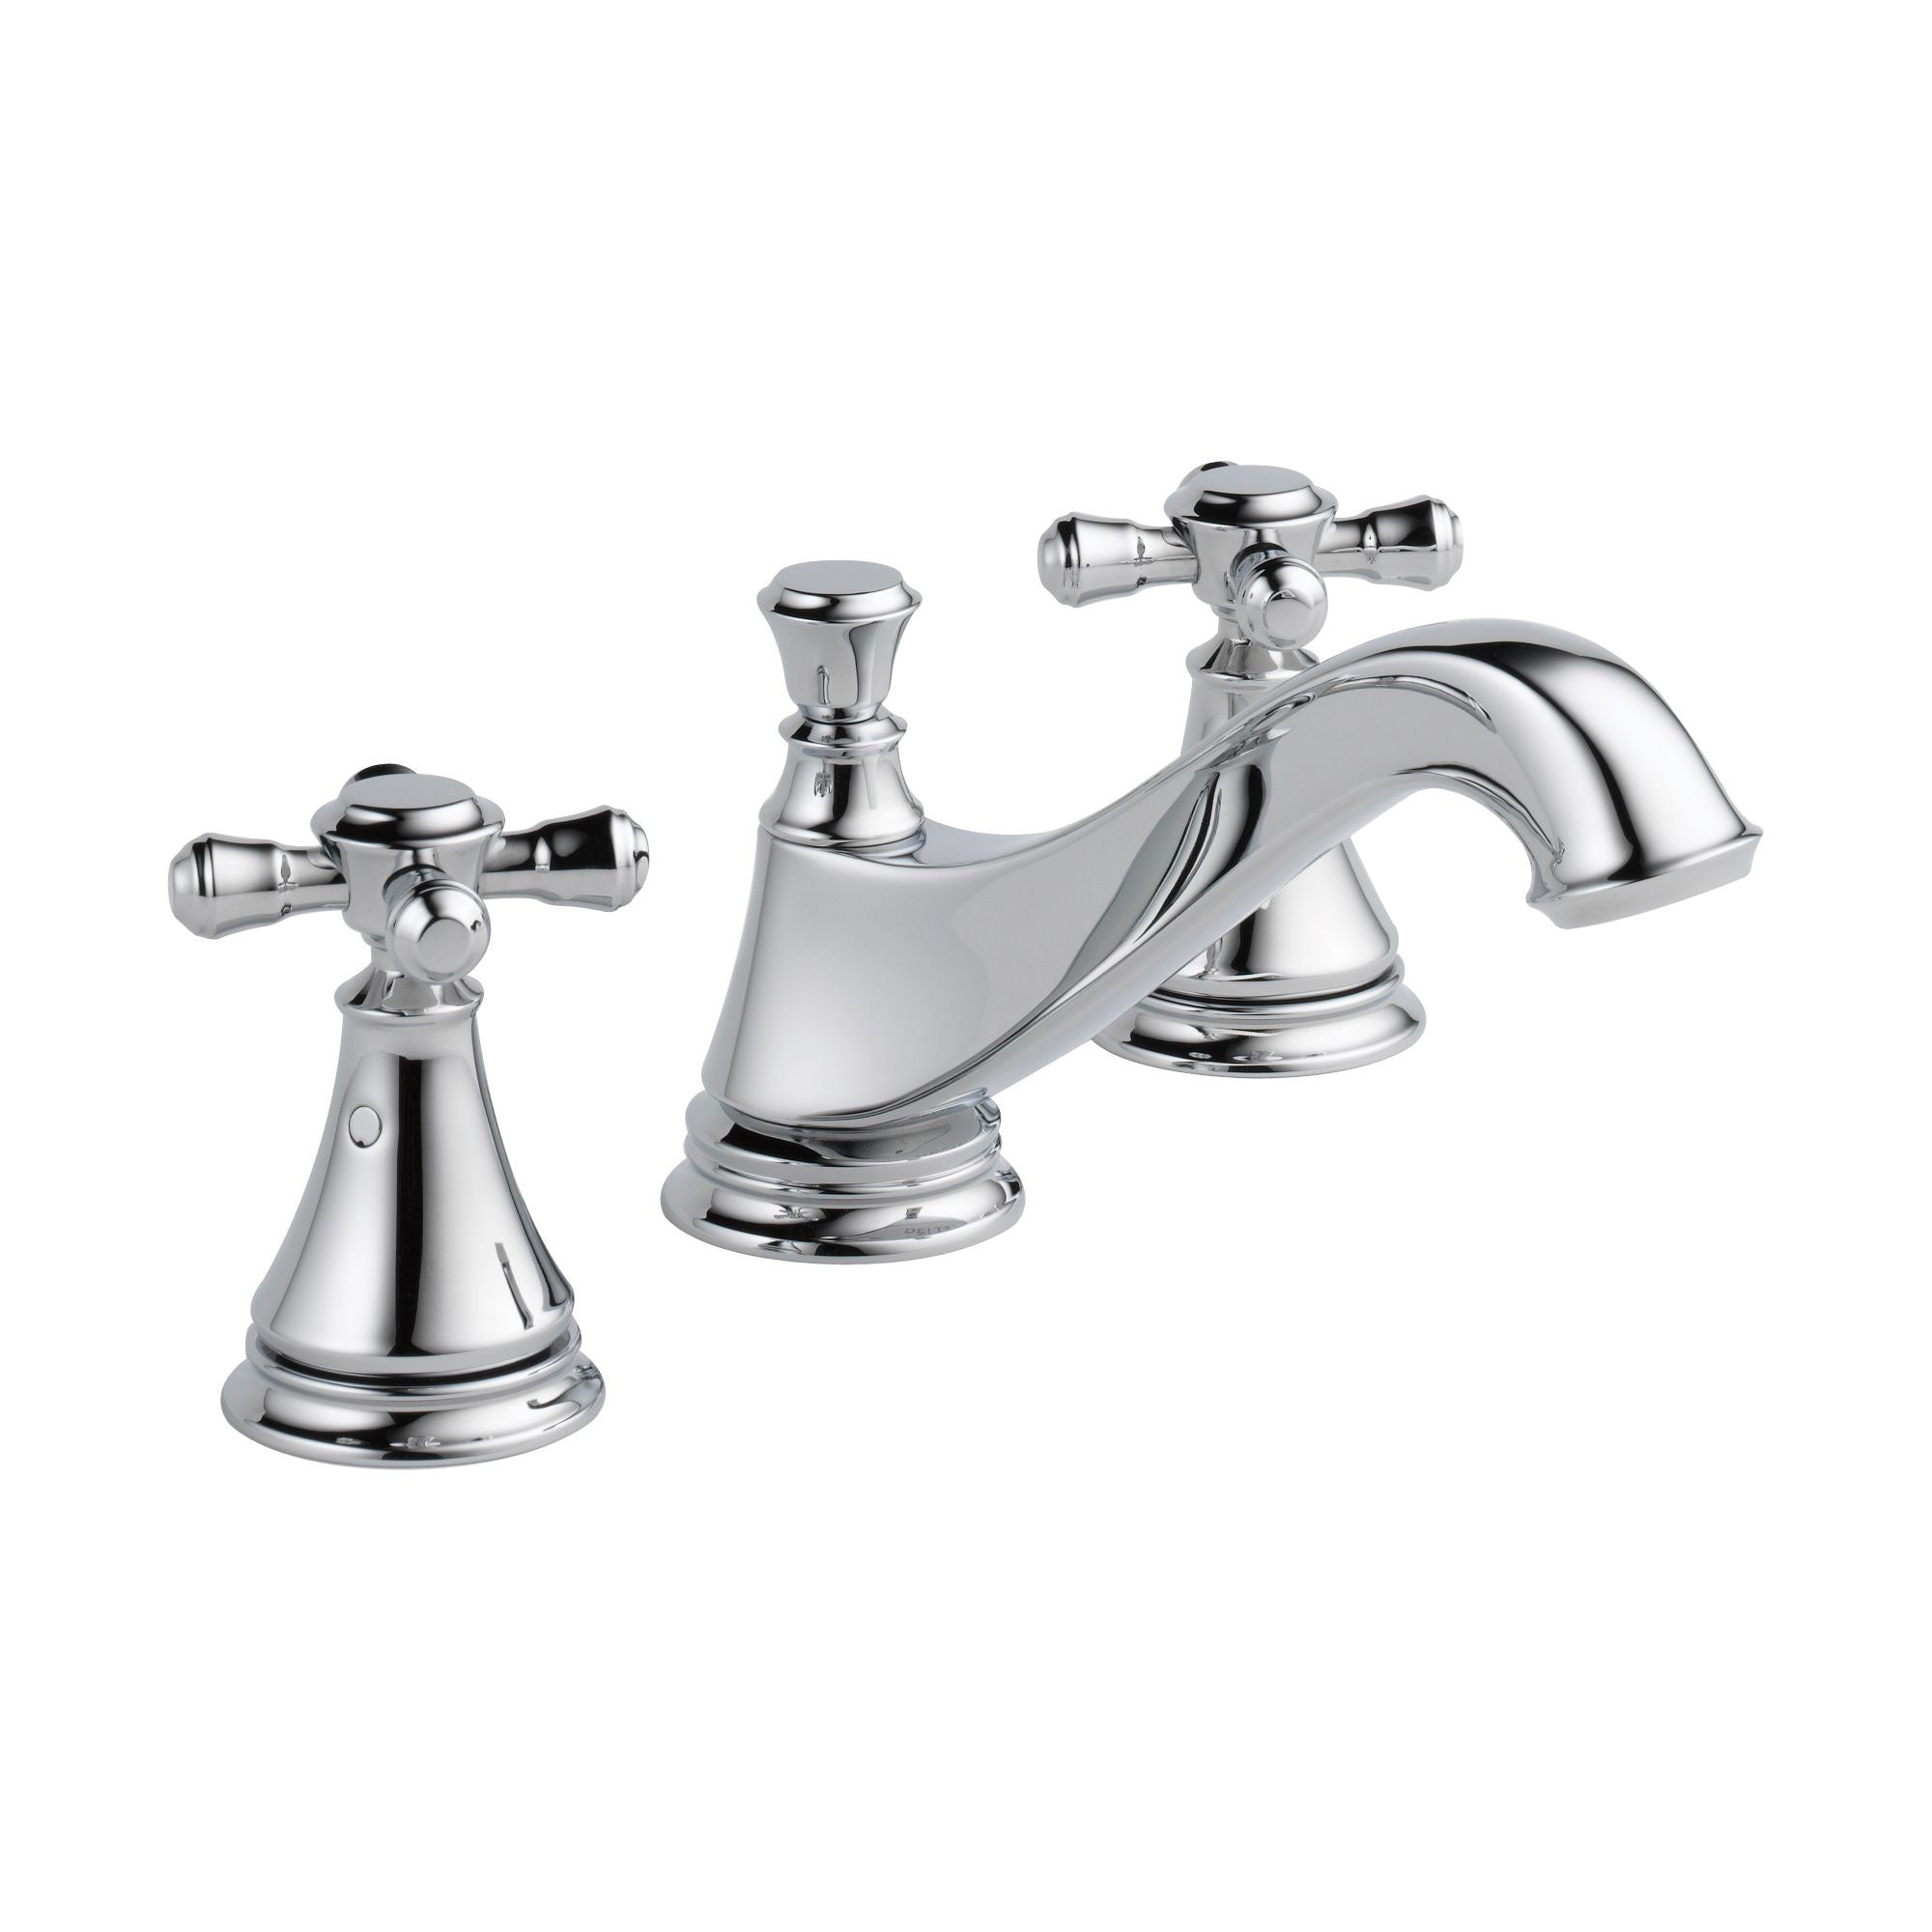 Delta Cassidy Chrome Finish Widespread Lavatory Low Arc Spout Bathroom Sink Faucet INCLUDES Two Cross Handles and Matching Metal Pop-Up Drain D1316V